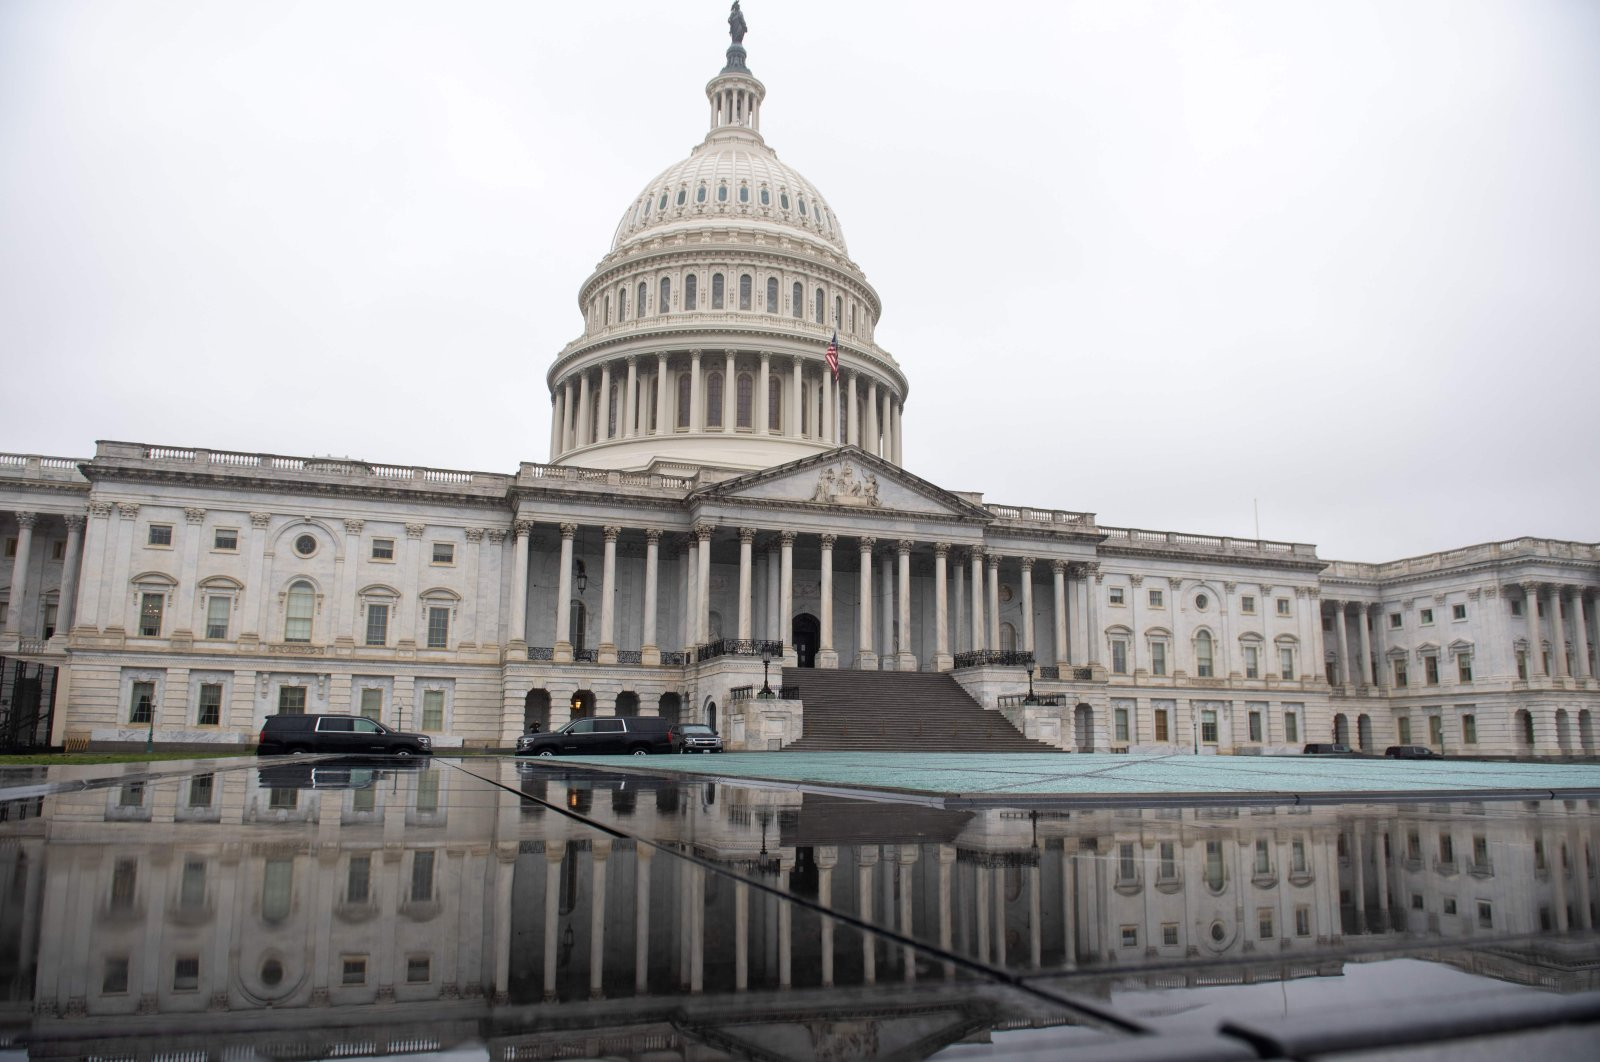 U.S. Capitol seen as the Senate continues negotiations on a relief package in response to the outbreak of COVID-19, in Washington, March 23, 2020. (AFP Photo)